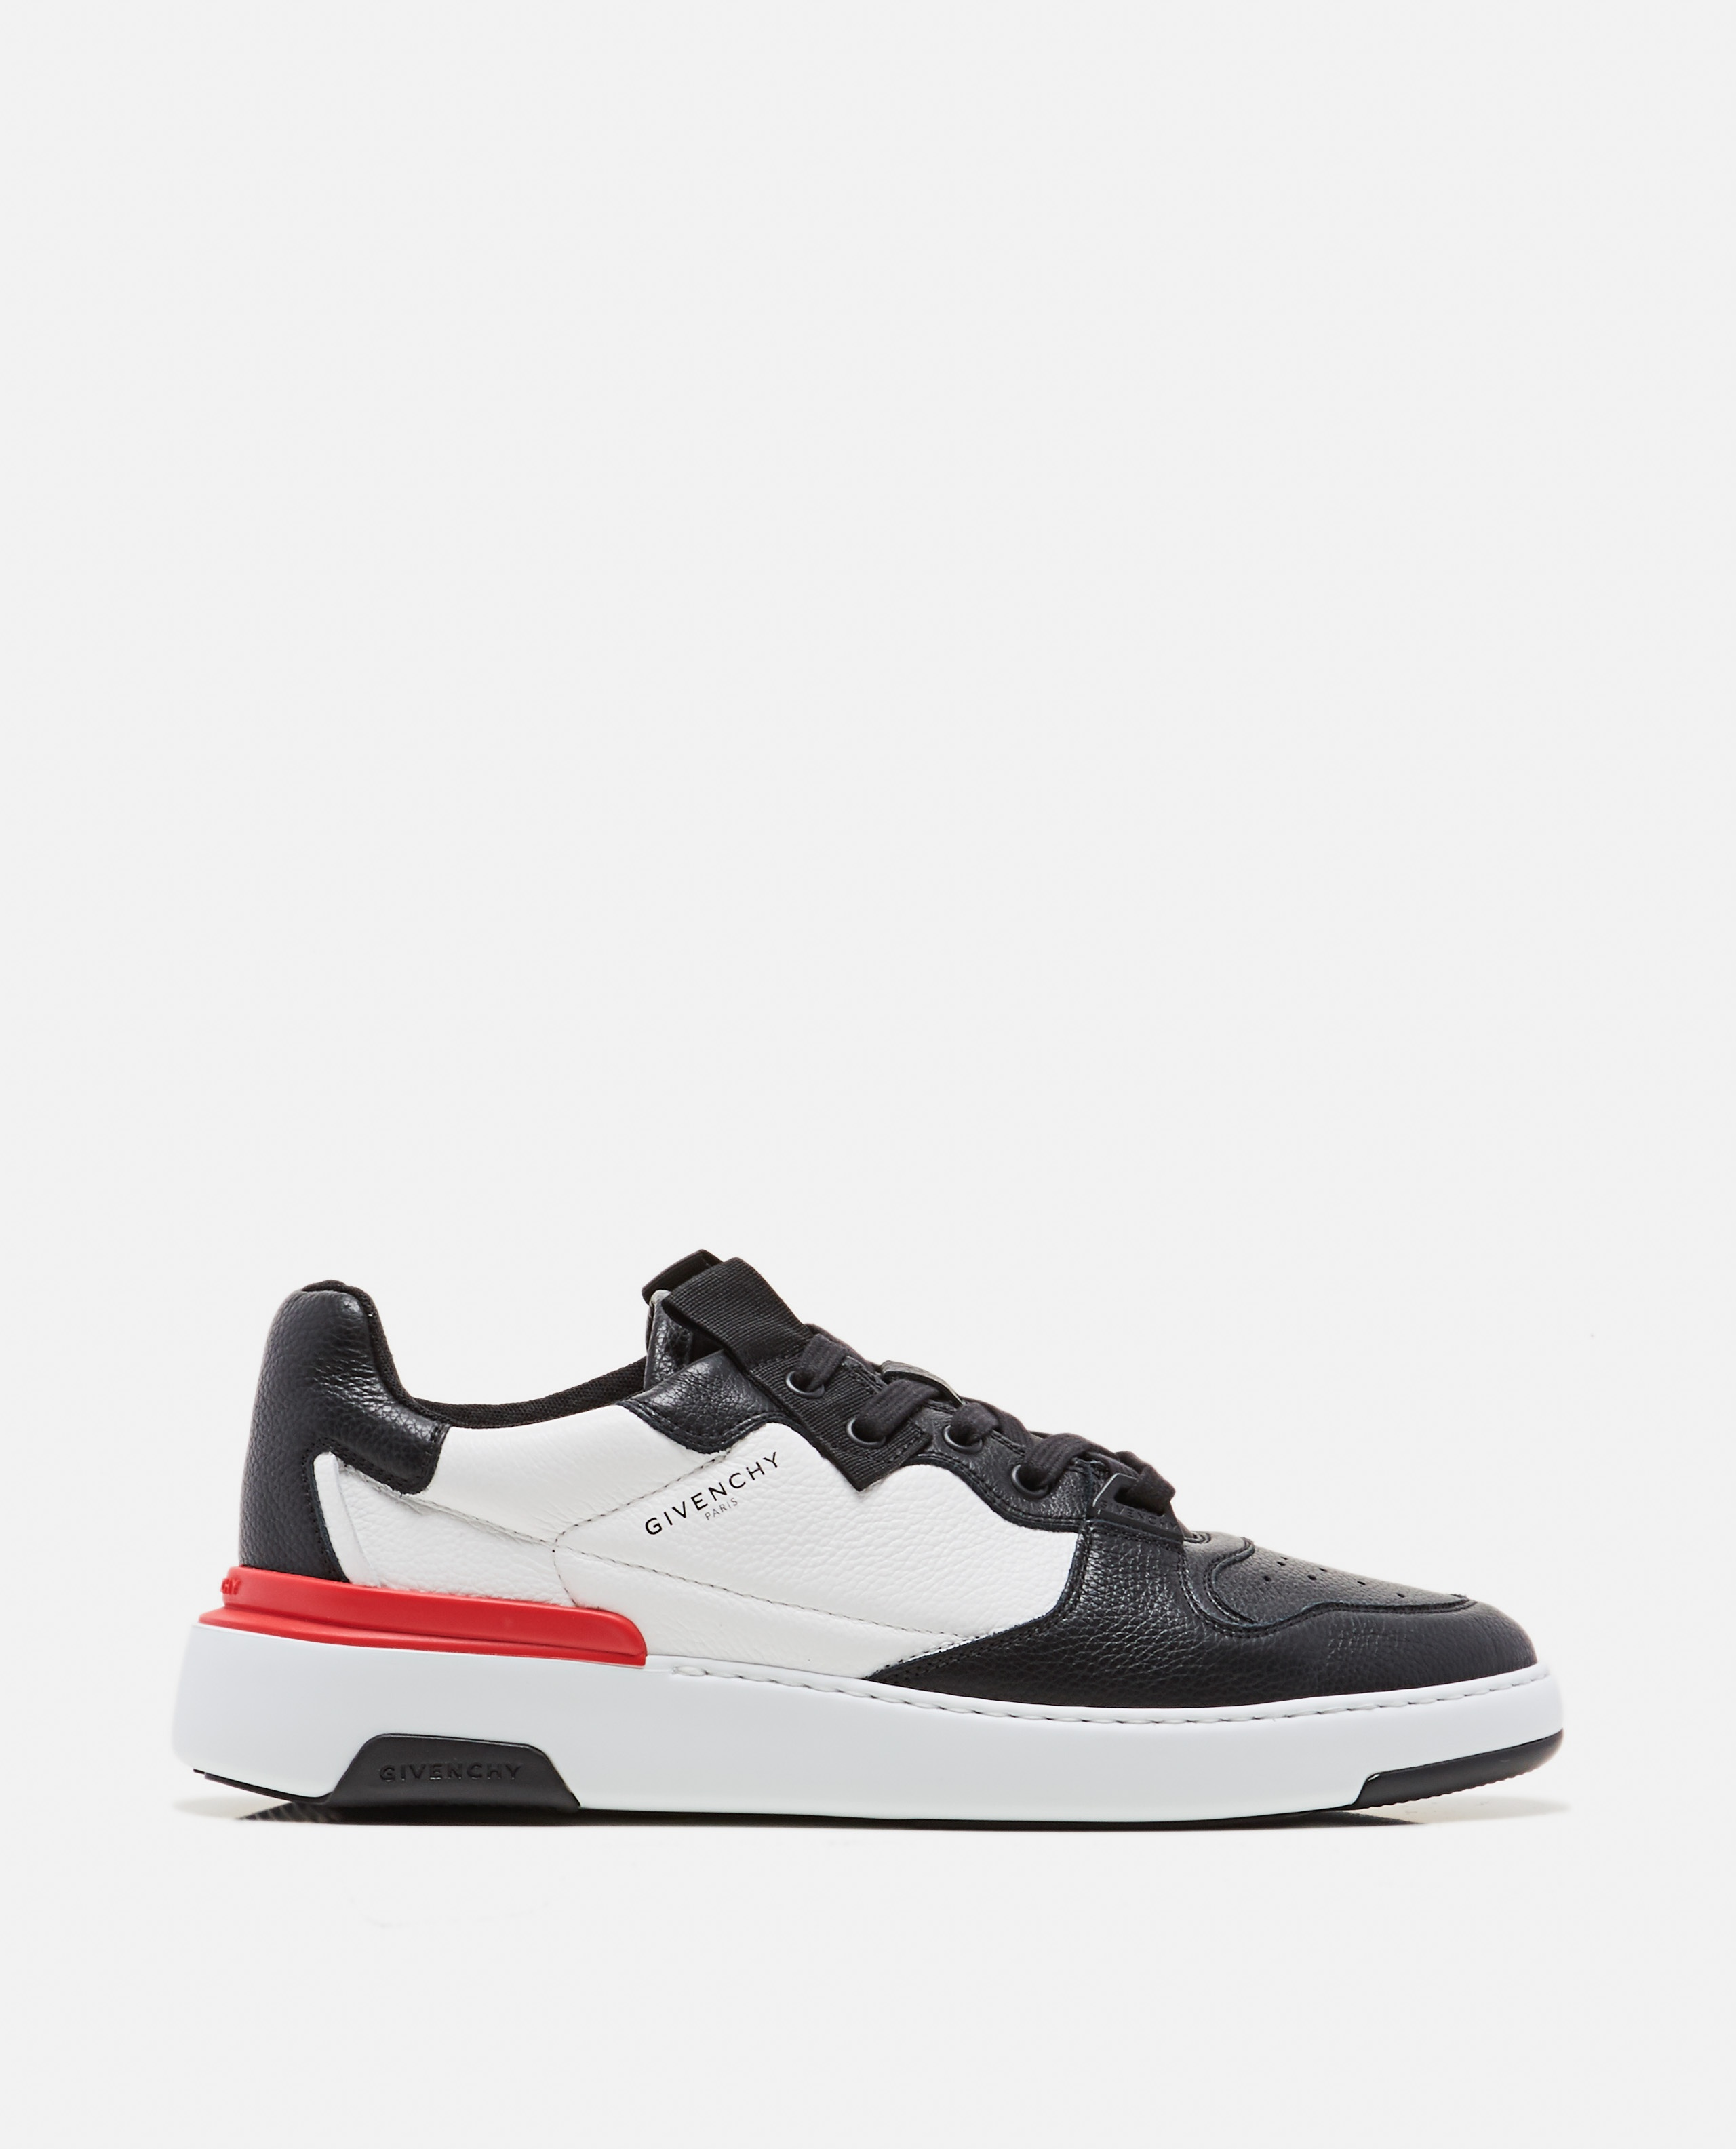 Low Wing Sneaker Men Givenchy 000226370033473 1